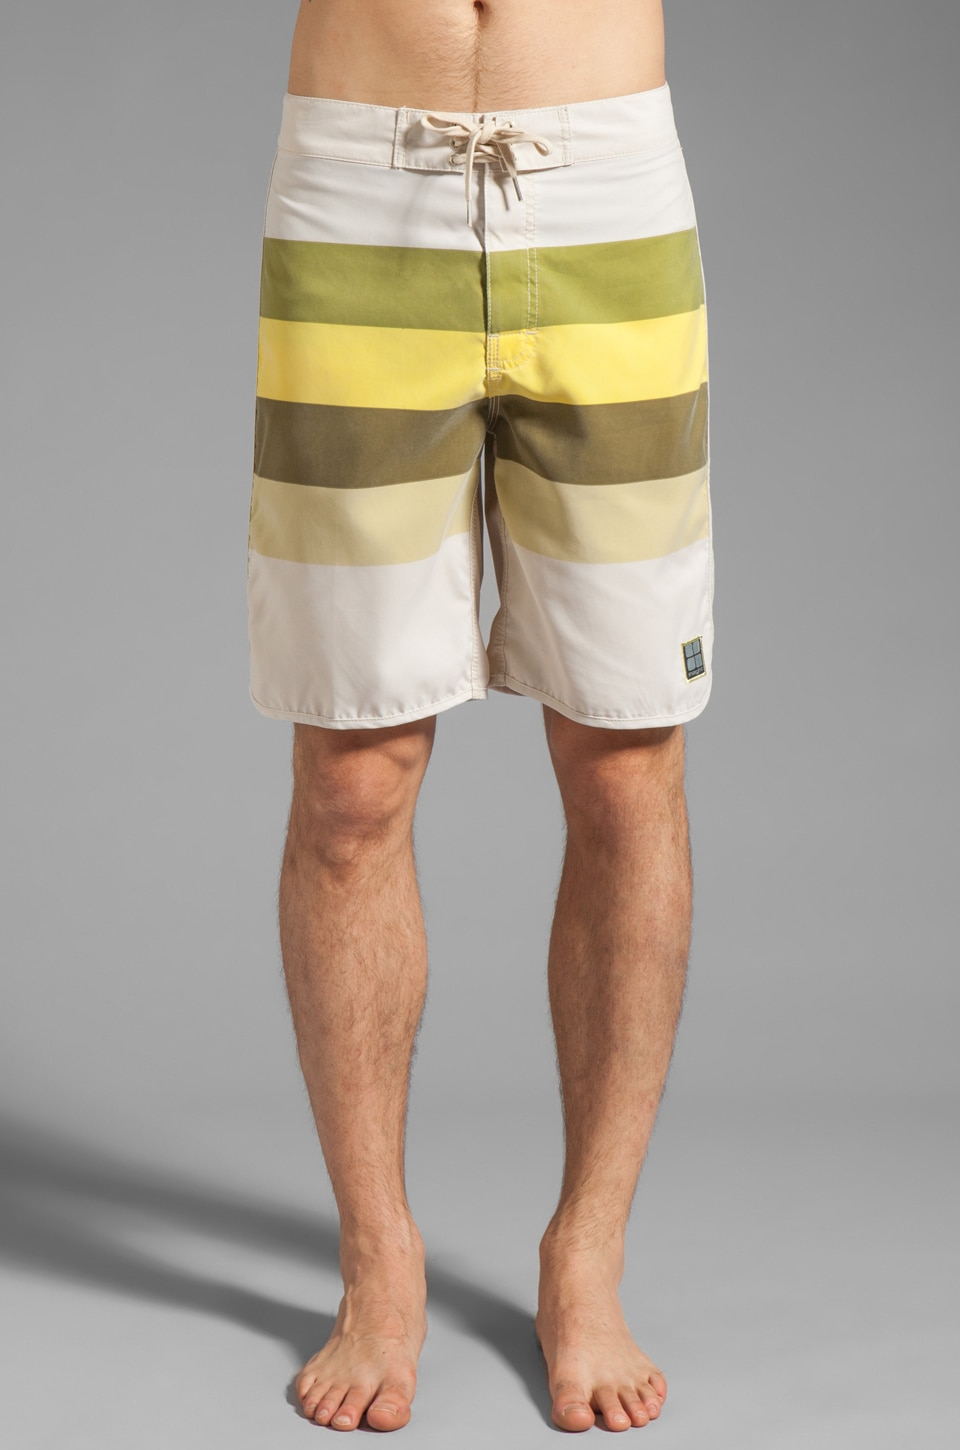 Insight Retro Stud Regular Boardshort in Dirty Sun